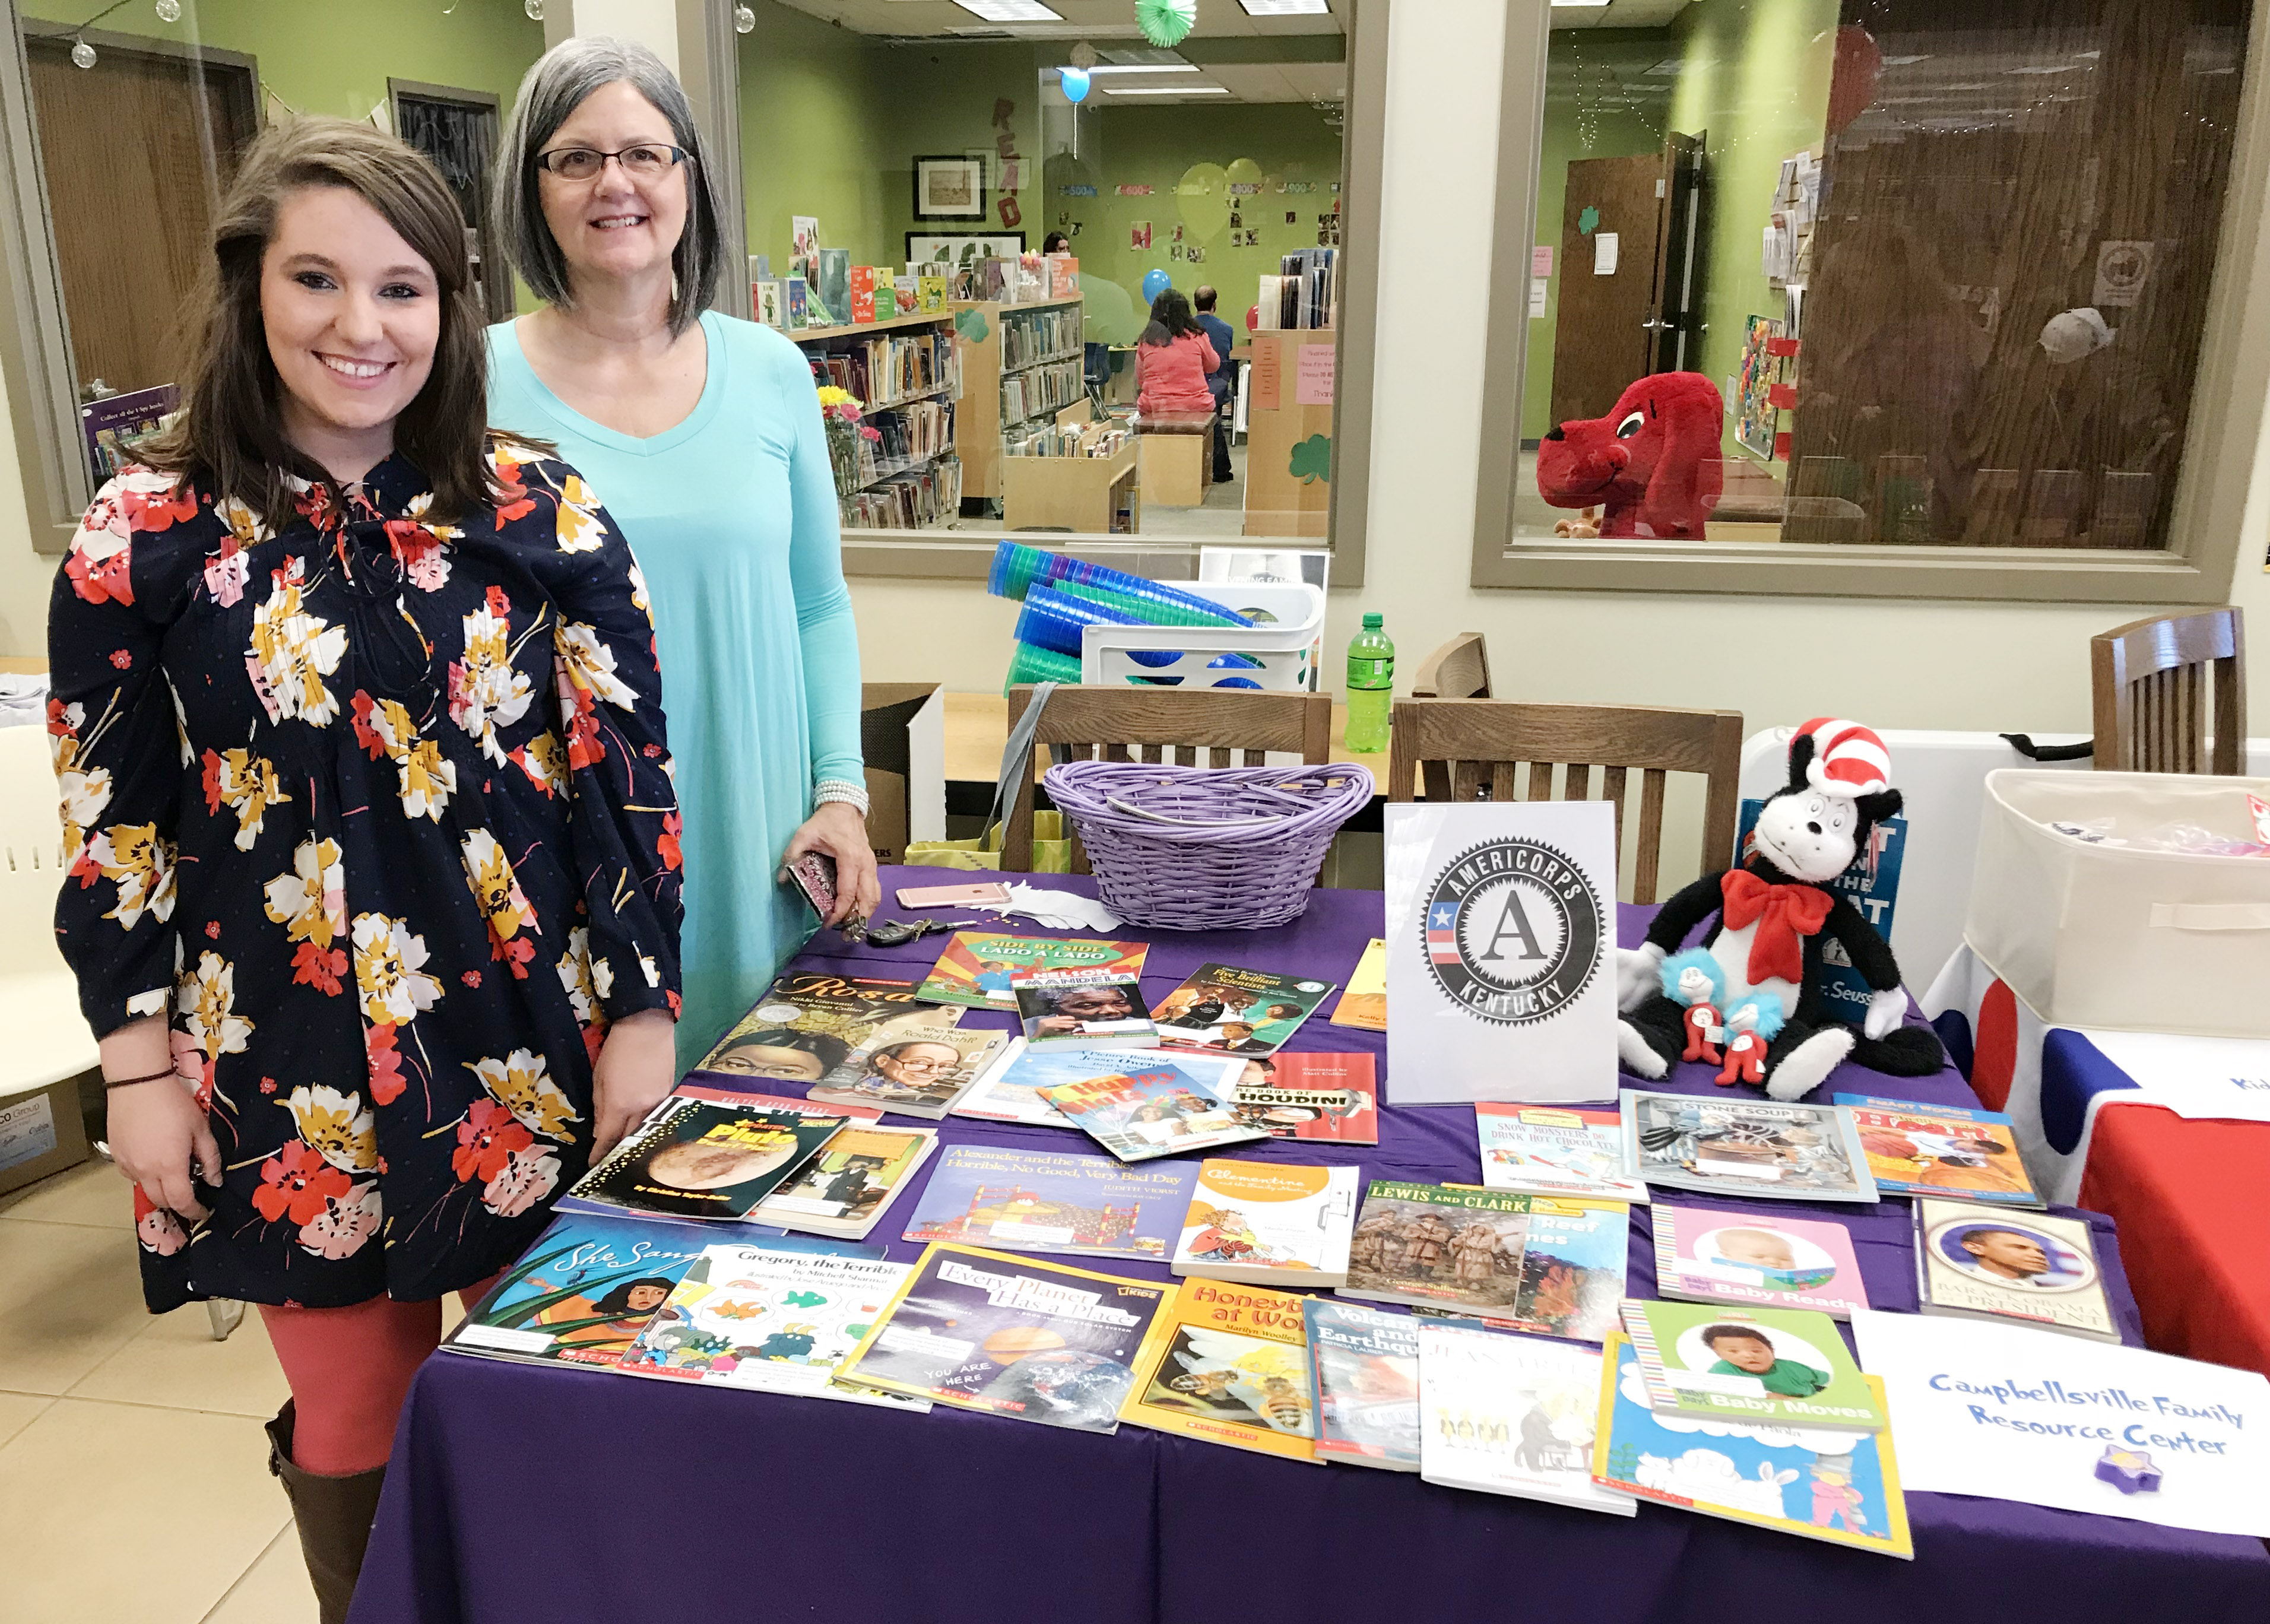 Campbellsville Family and Resource Youth Services Center Director Sue Crabtree, at right, and Campbellsville Middle School FRYSC Corp tutor Ashleigh Lewis attend Preschool Palooza.